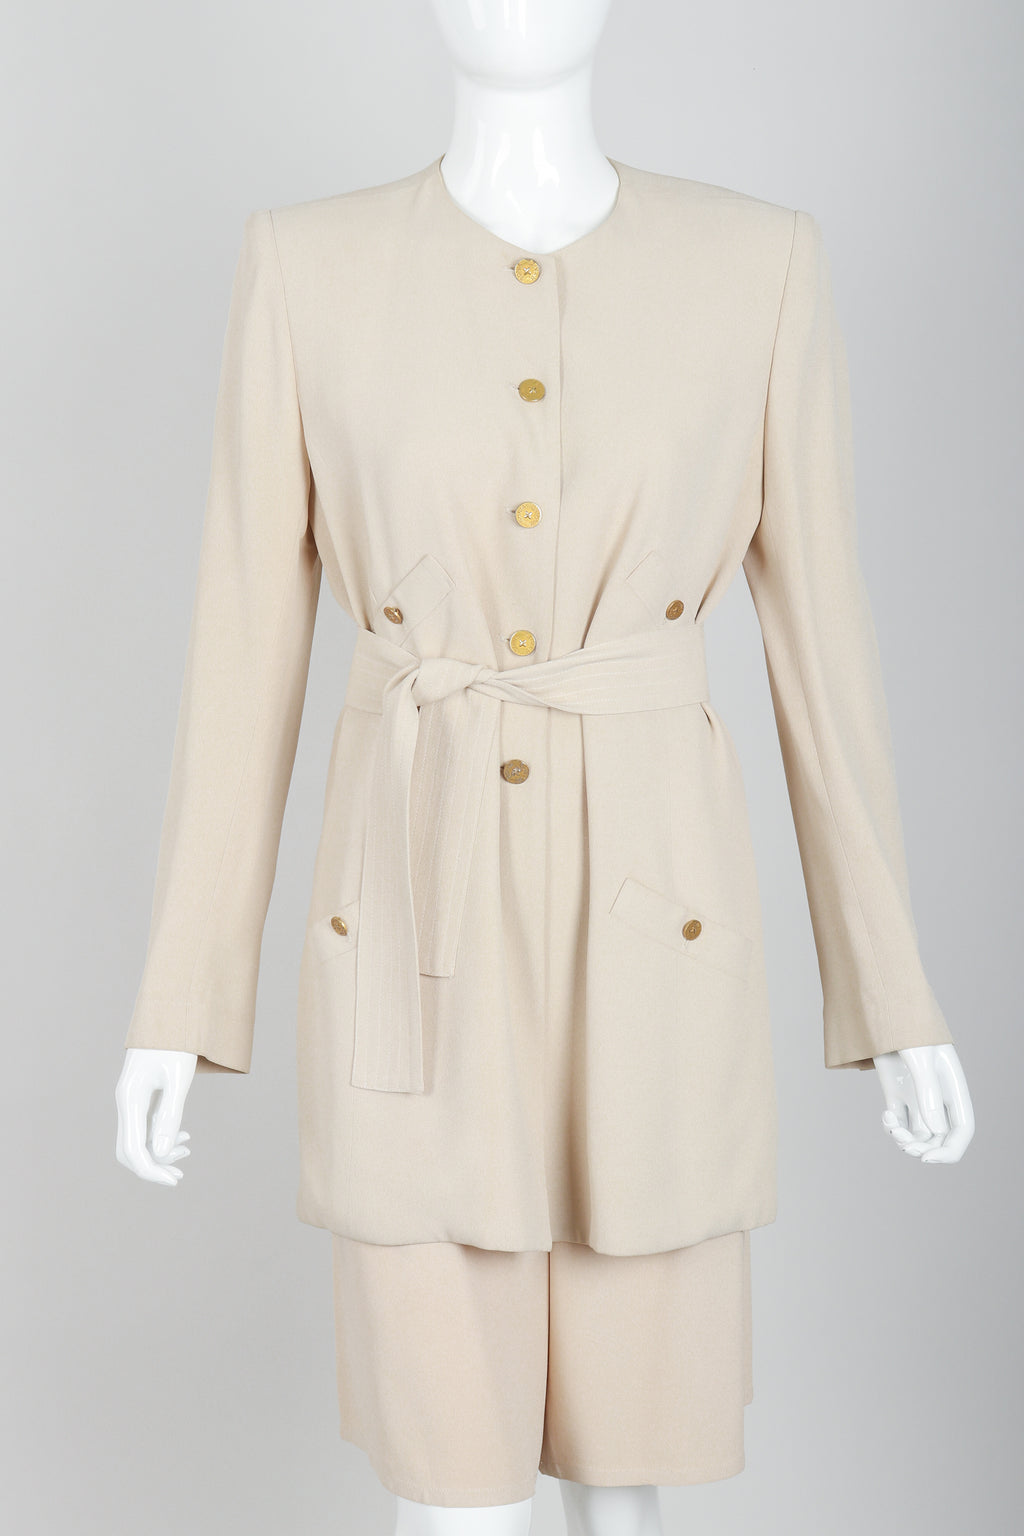 Vintage Sonia Rykiel Sand Crepe Belted Jacket & Short Set on Mannequin front crop at Recess